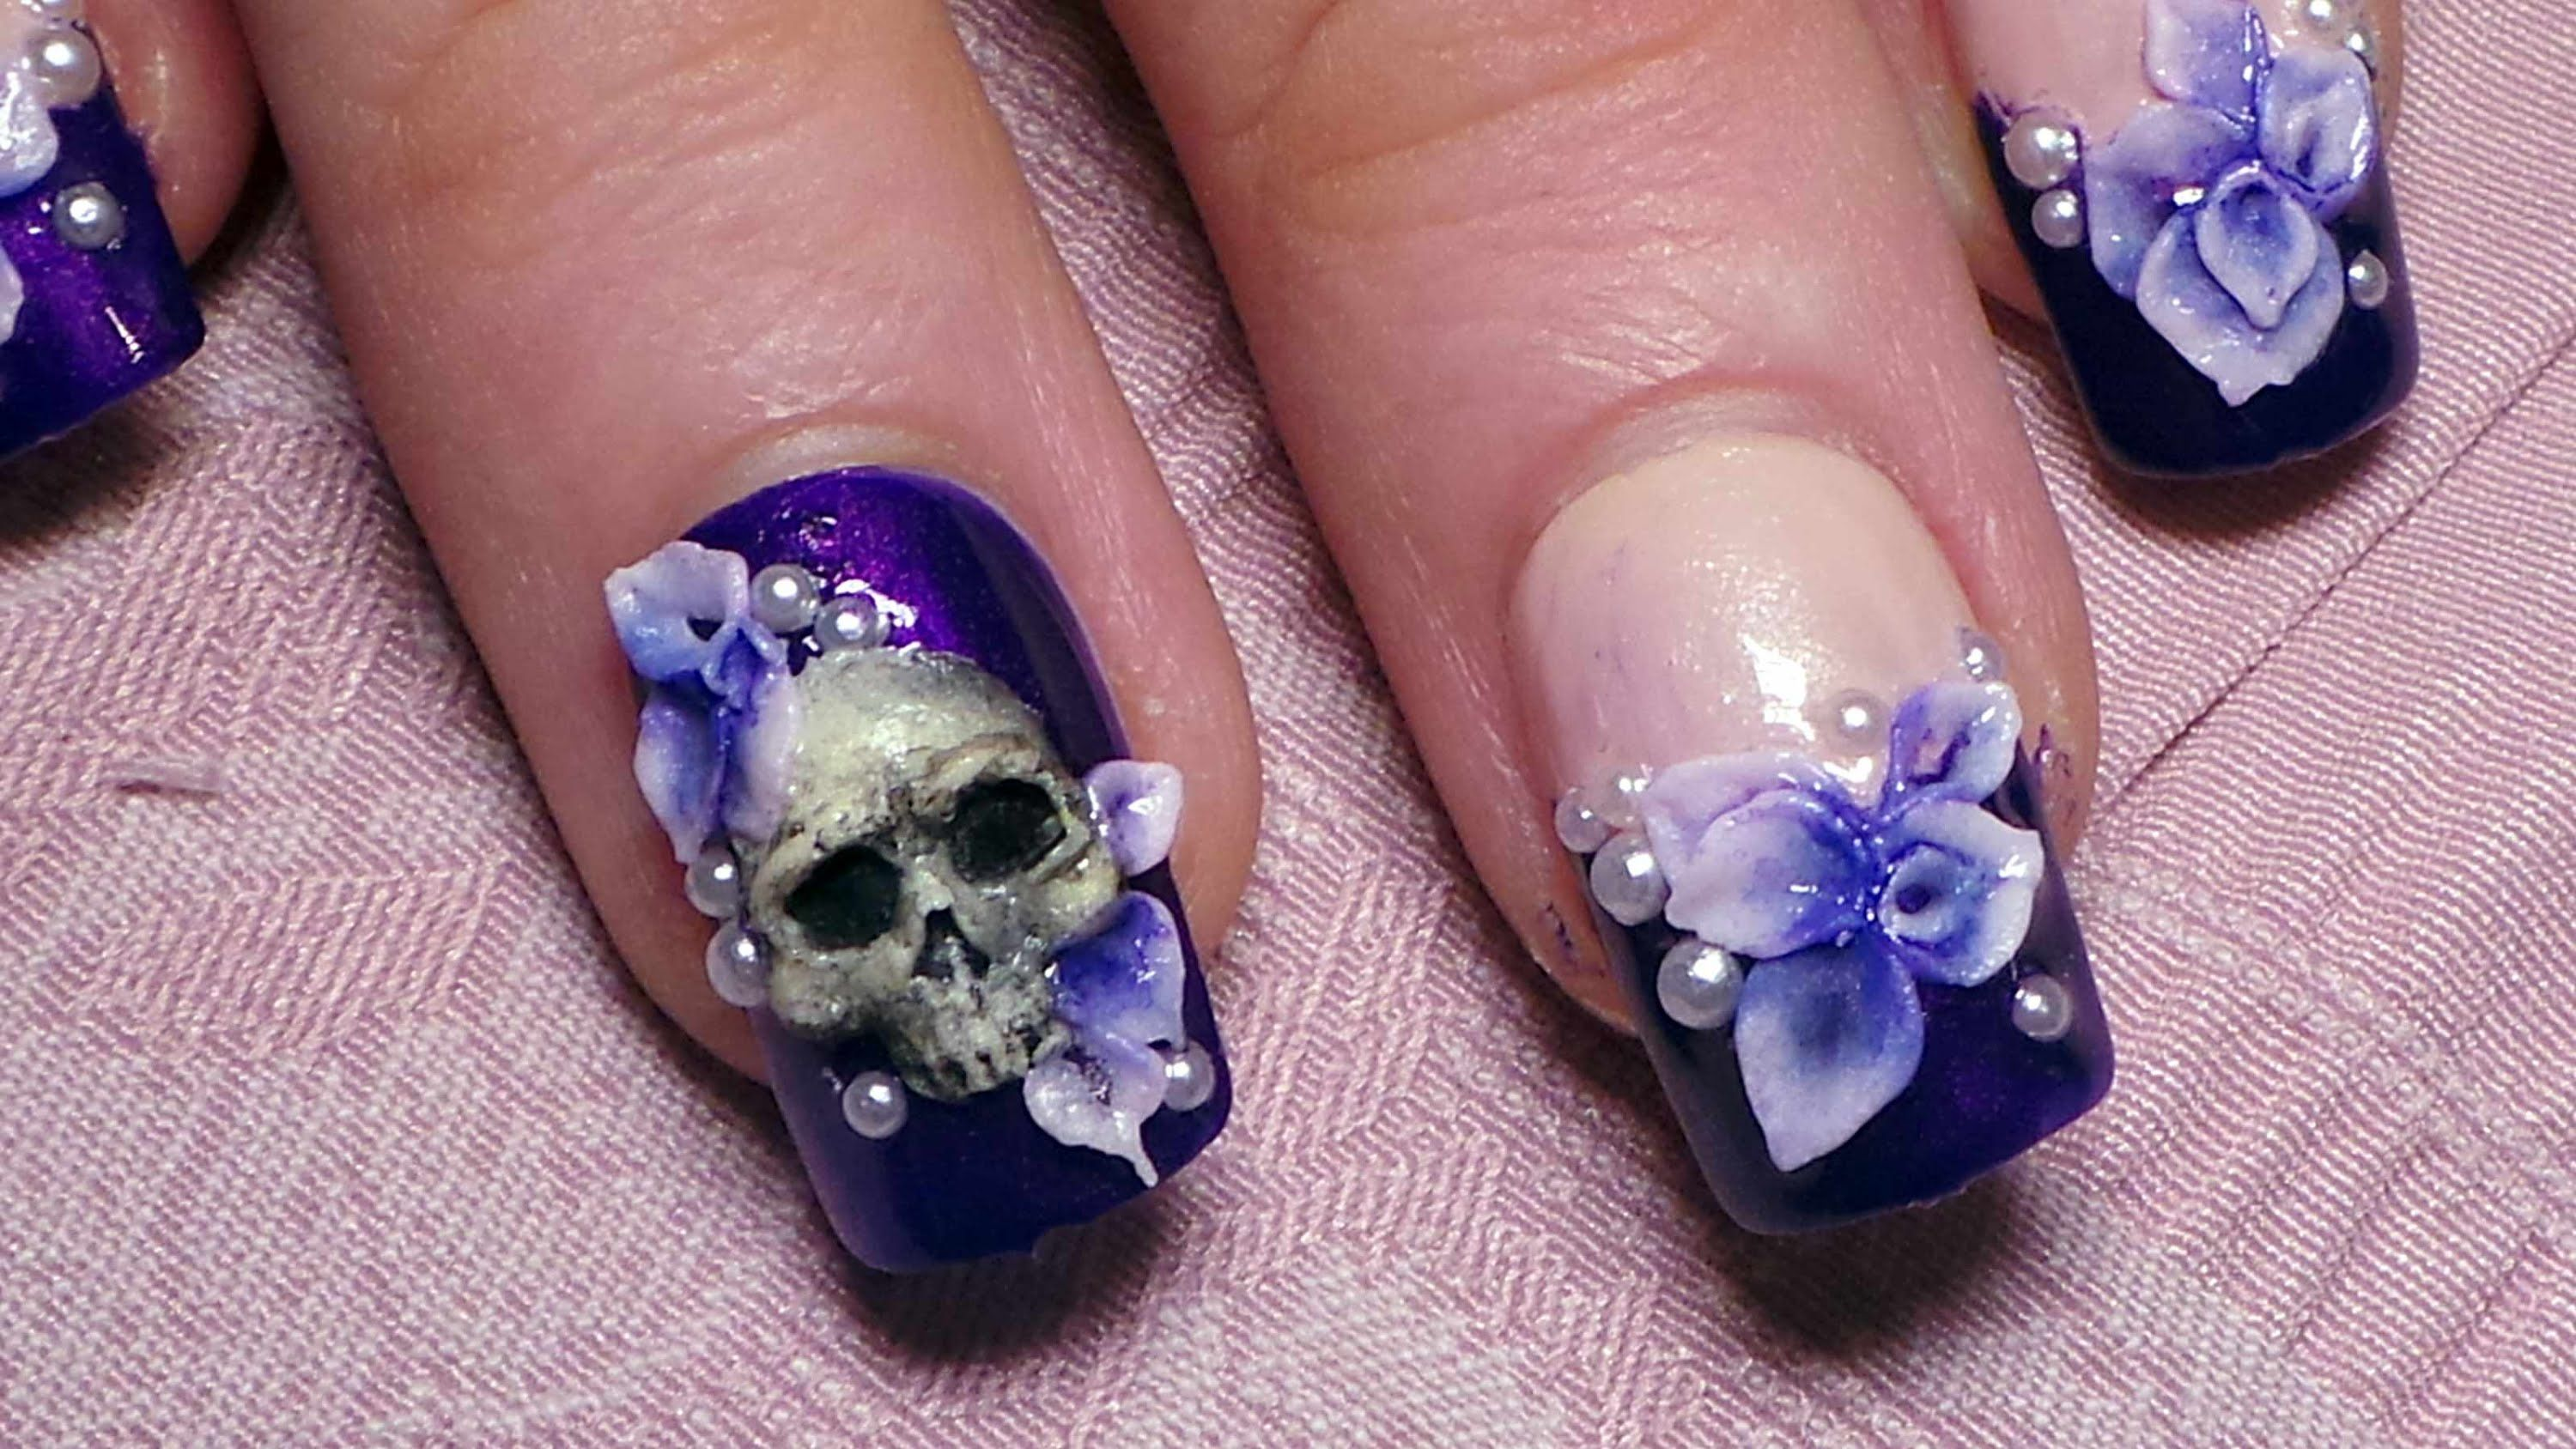 Great Best Nail Polish In The World Tiny Nail Art Equipment List Square Crystal Nail Art Designs Nail Fungus Treatment Products Youthful Where Can I Buy Metallic Nail Polish PurpleImages Of Nail Polish Colors 1000  Images About SCSnails Nail Art Tutorials On Pinterest